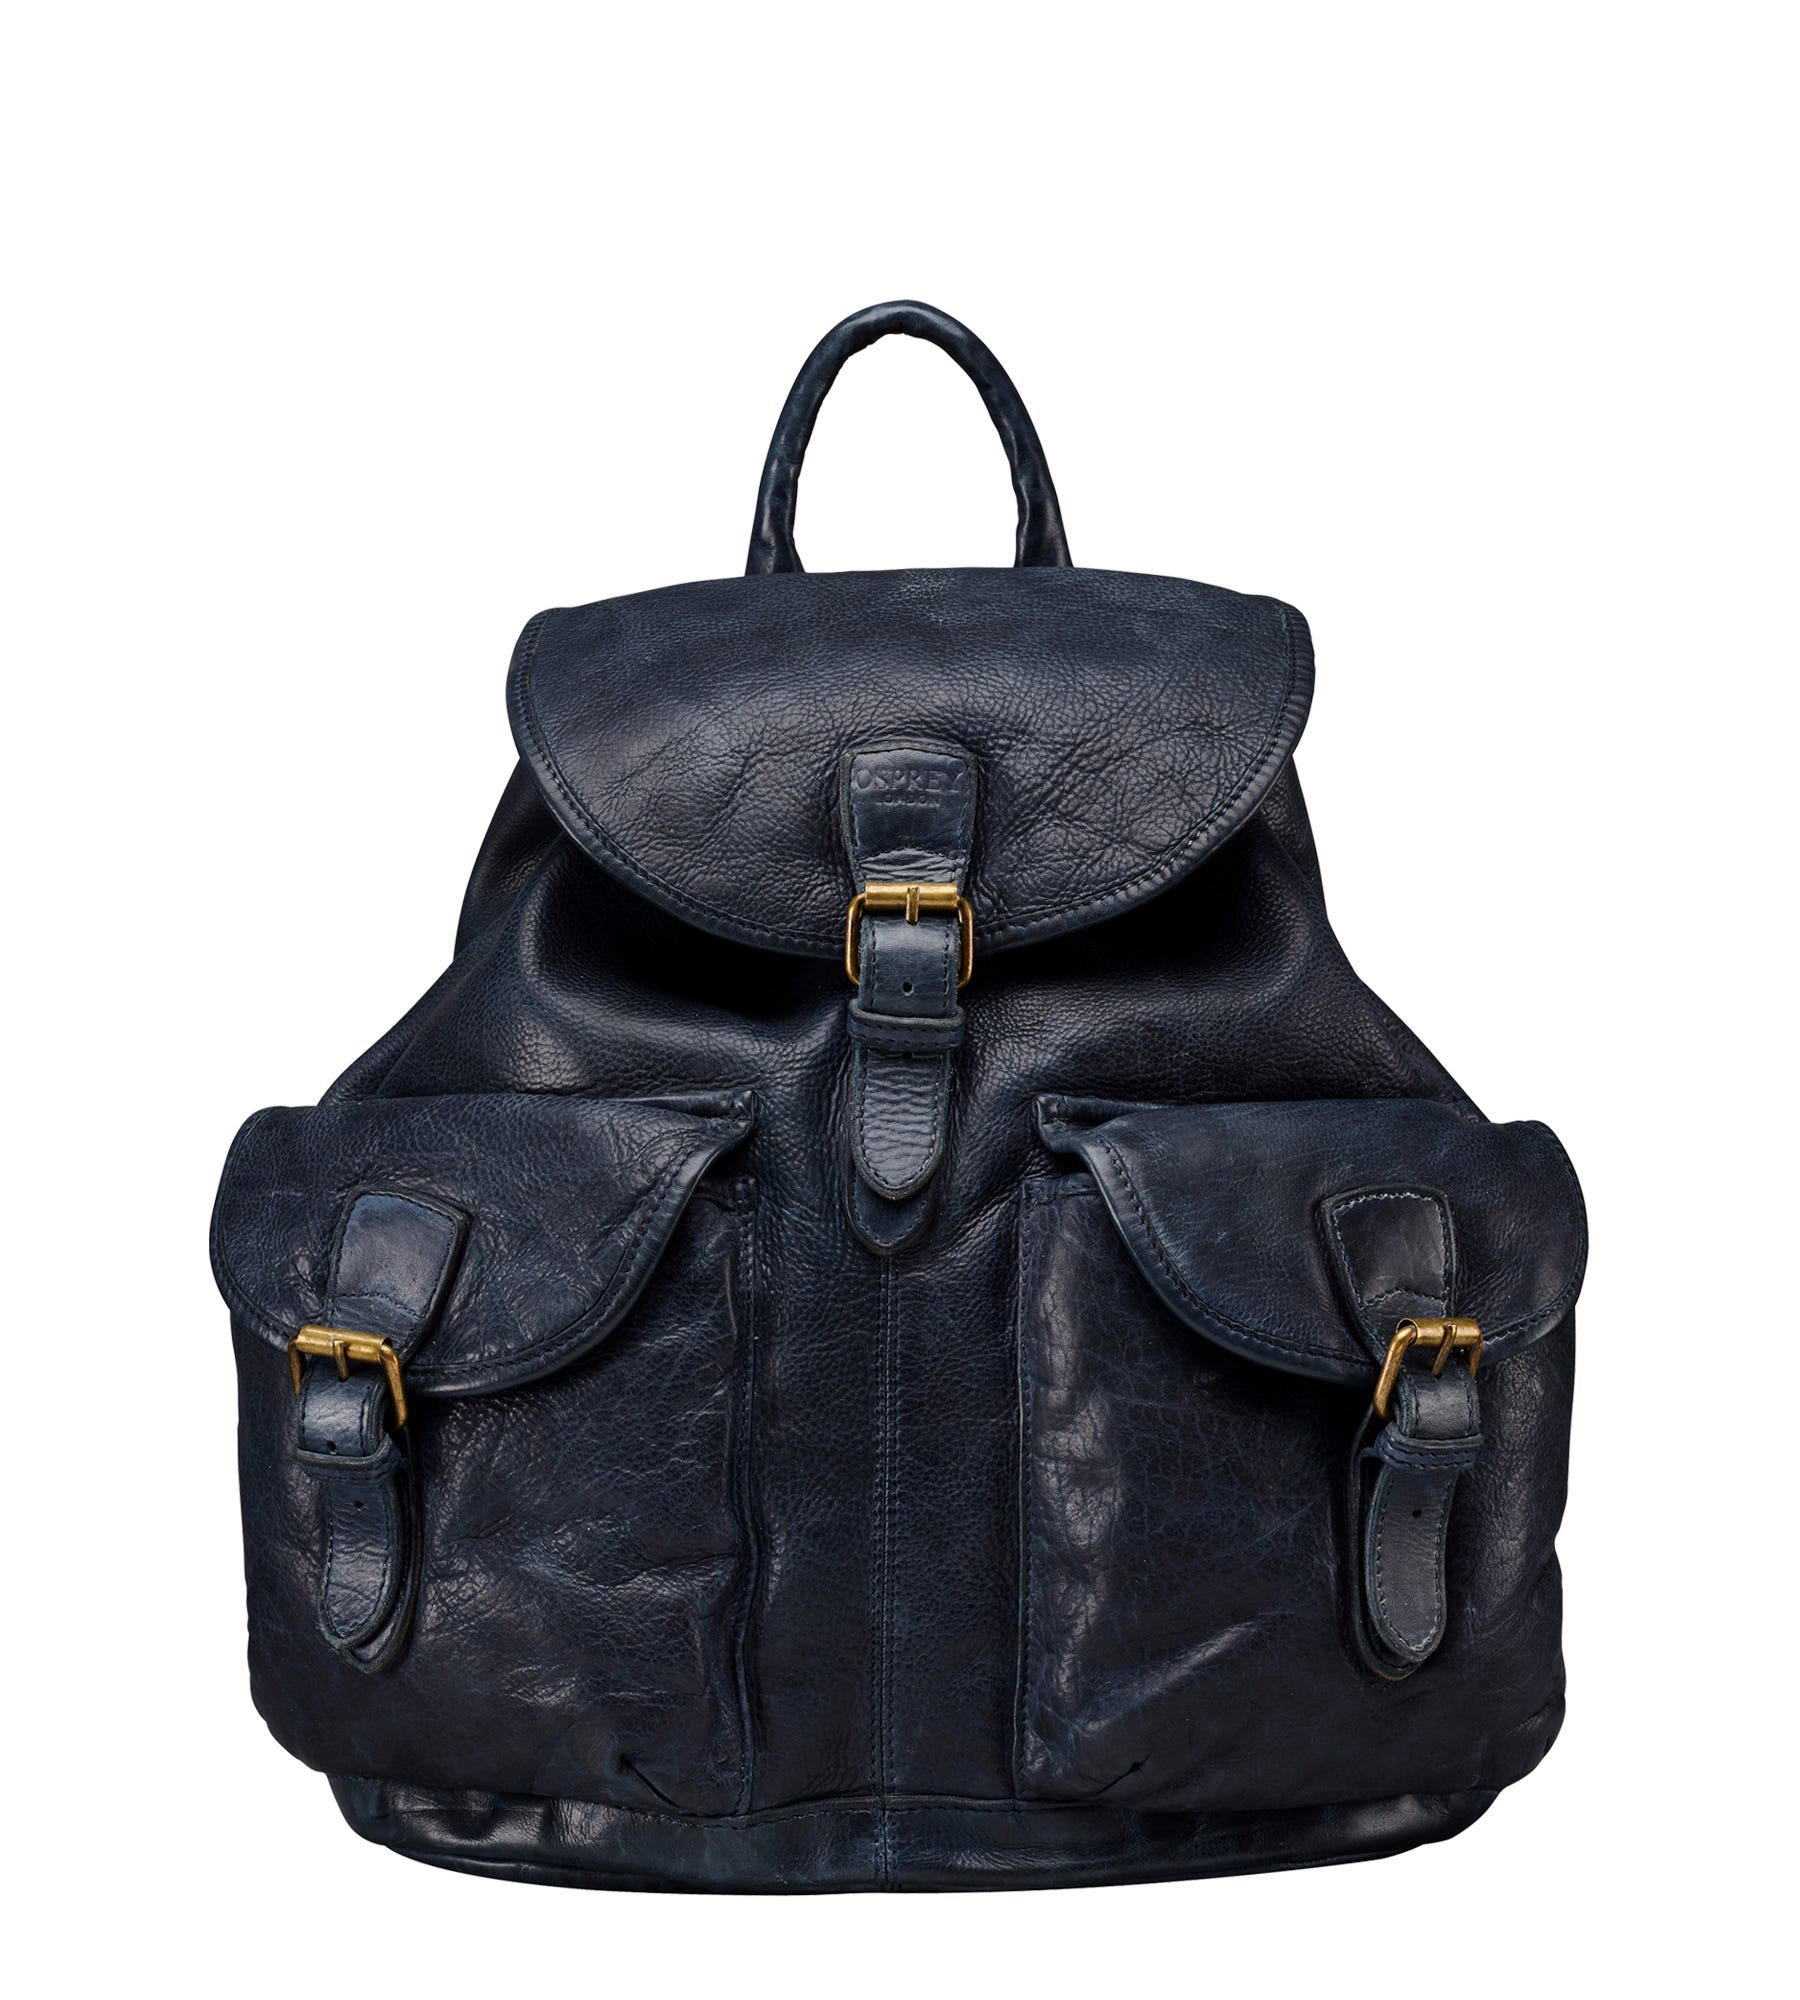 An image of The Hazelden Leather Rucksack